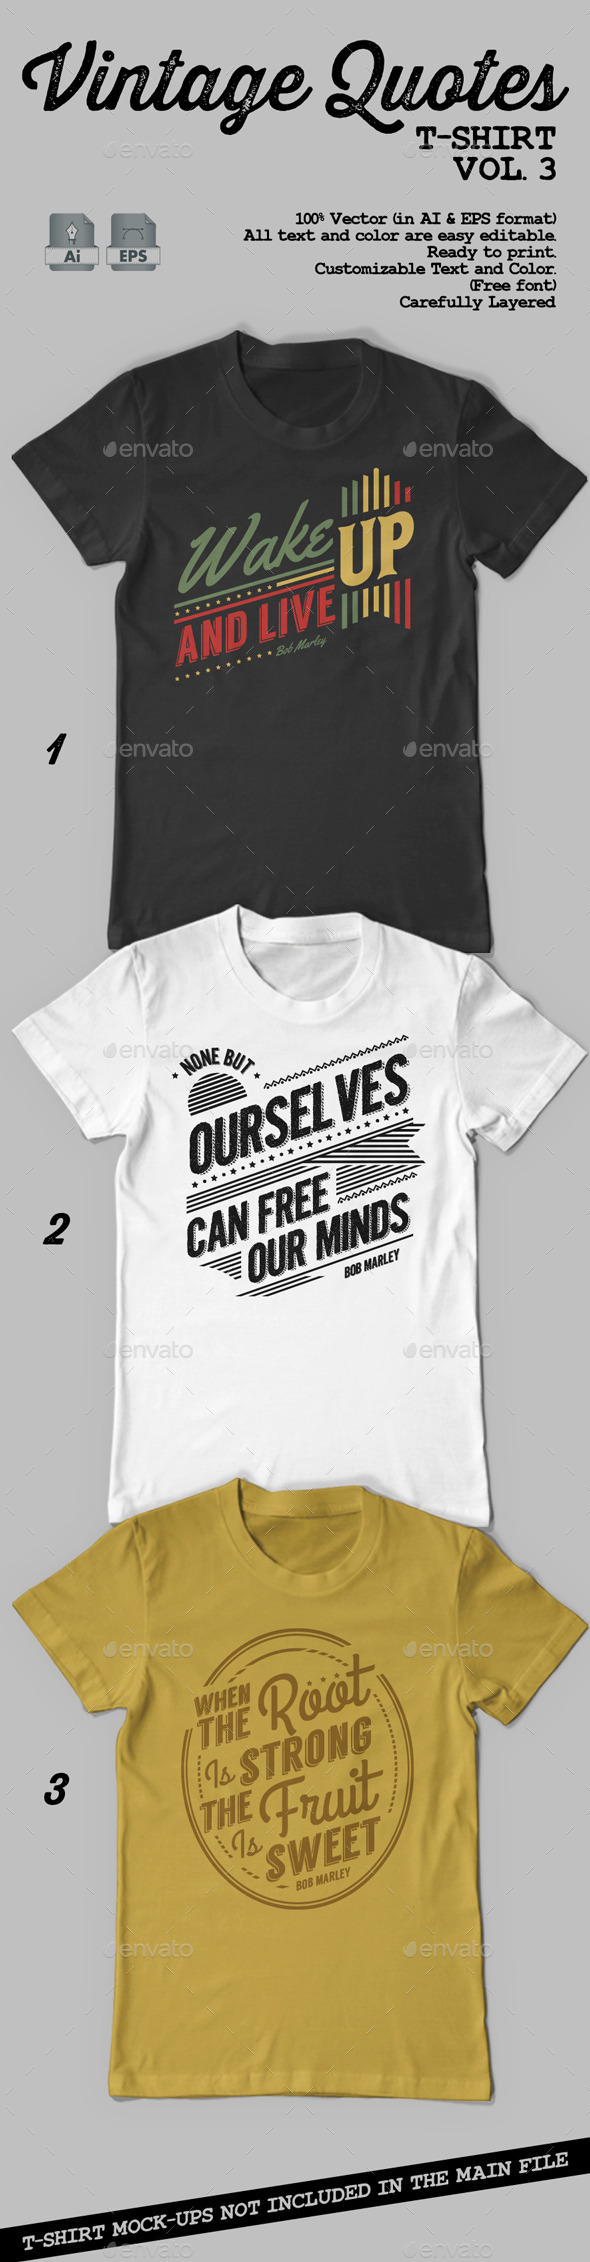 Vintage Quotes T-Shirt Vol. 3 - T-Shirts